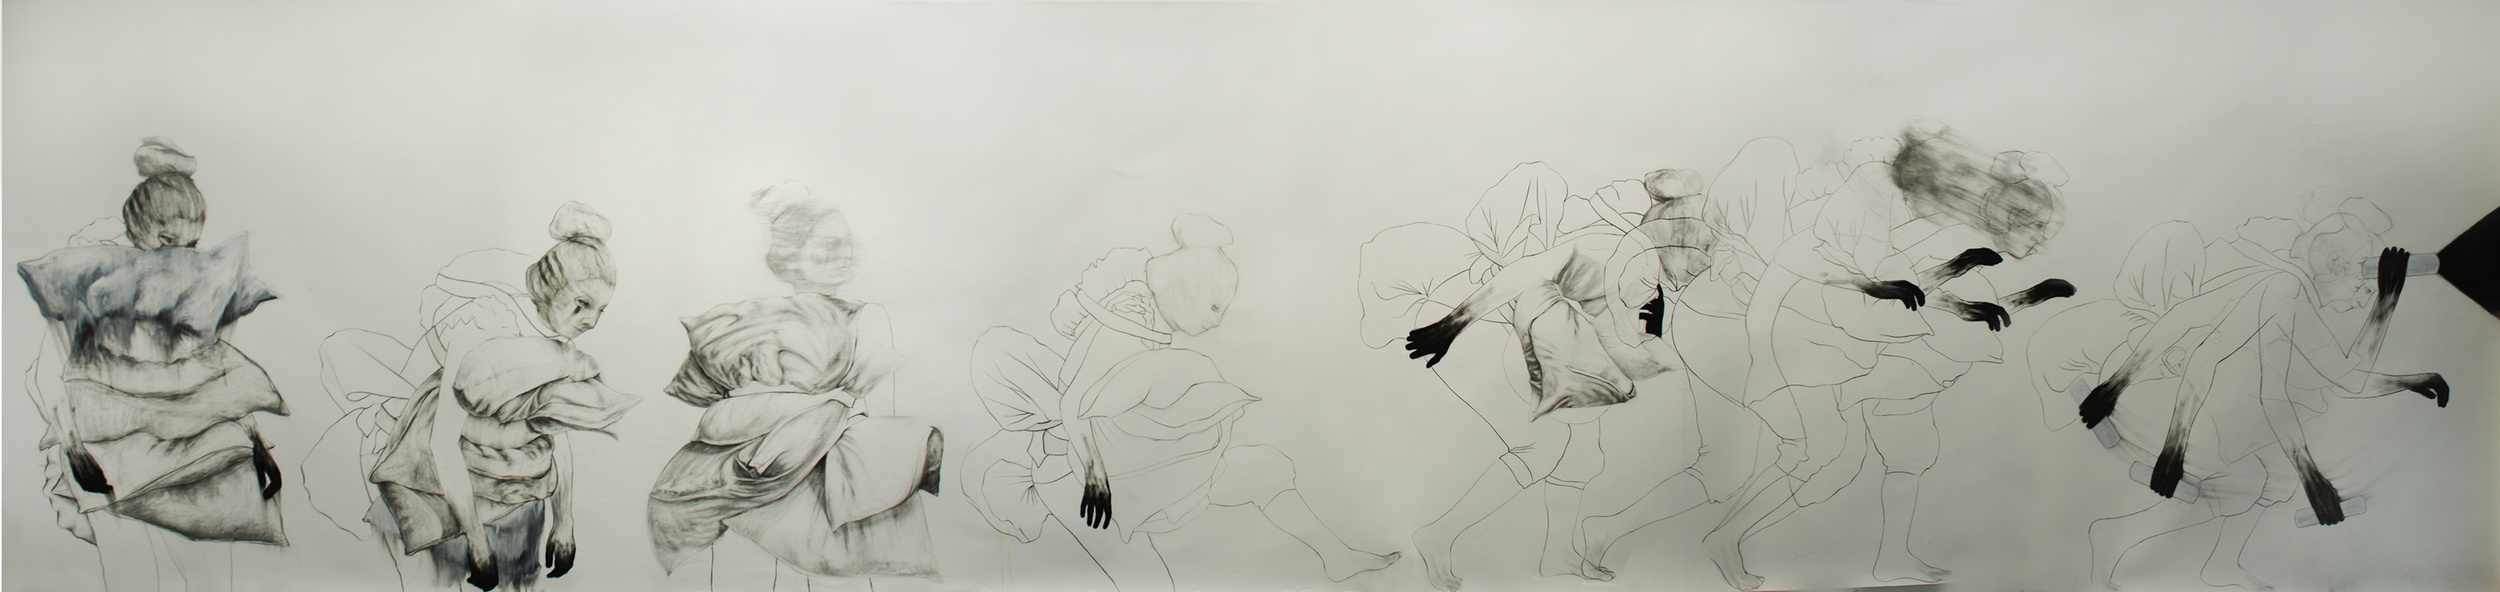 "Hunting for meaning / 60"" x 168"" / Charcoal, pencil & oil pastel on paper"